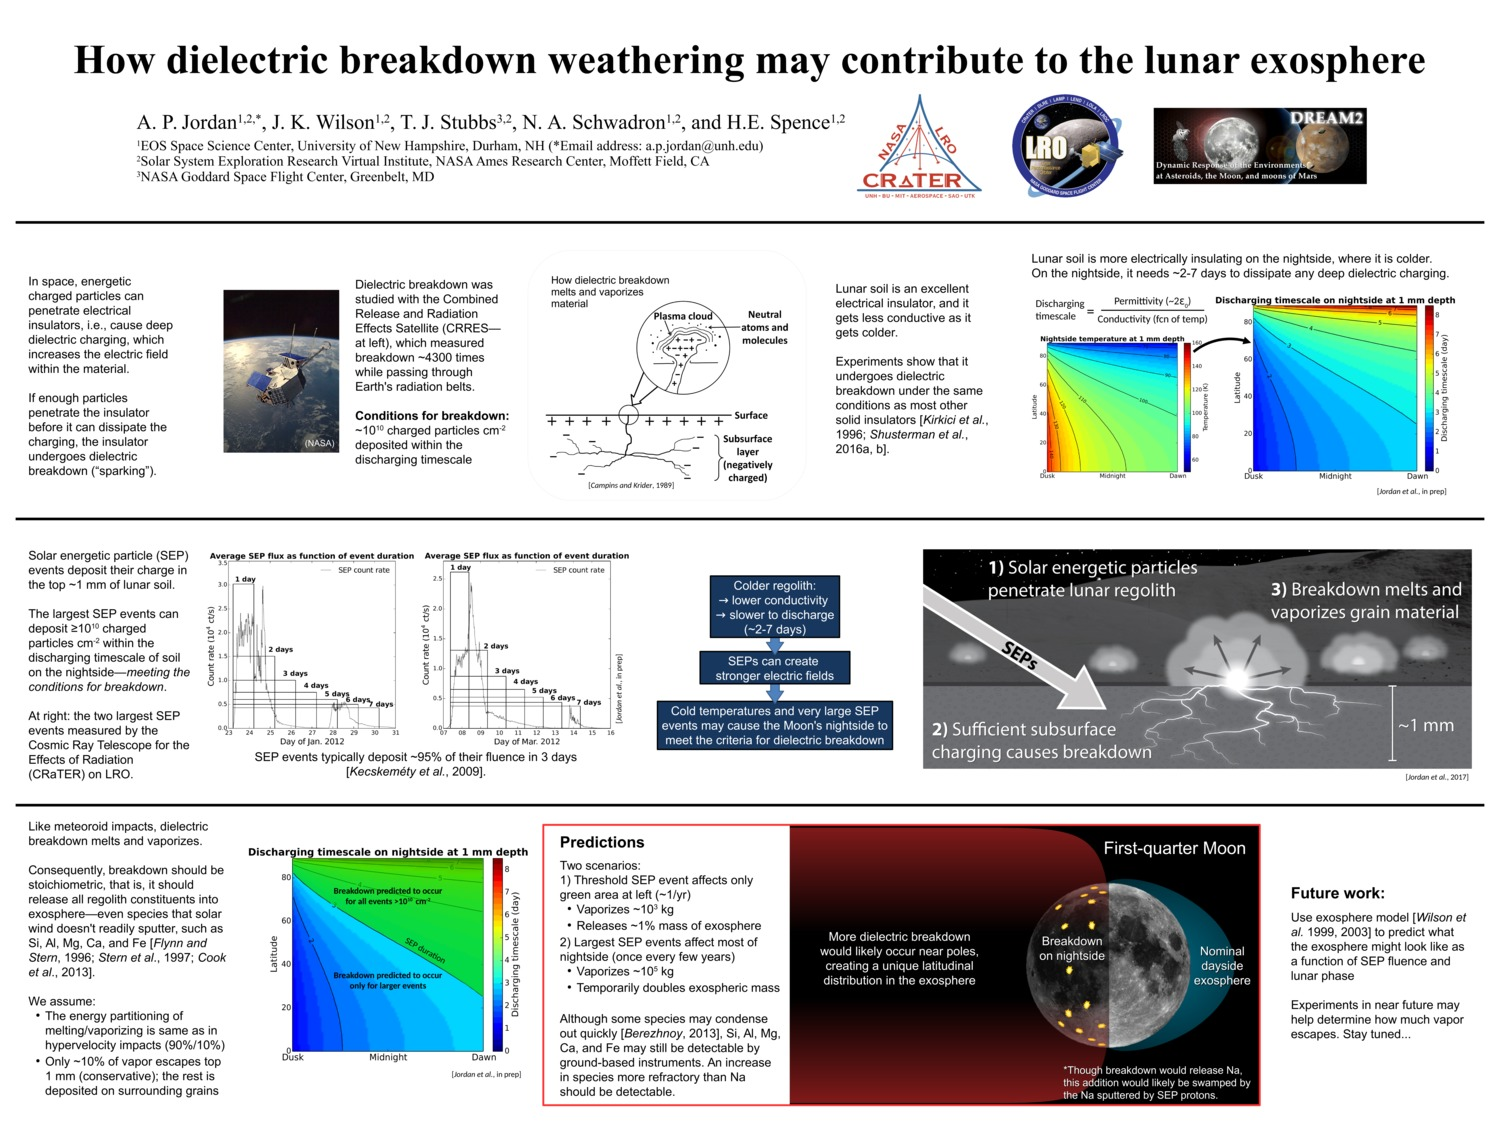 How Dielectric Breakdown Weathering May Contribute To The Lunar Exosphere by api44